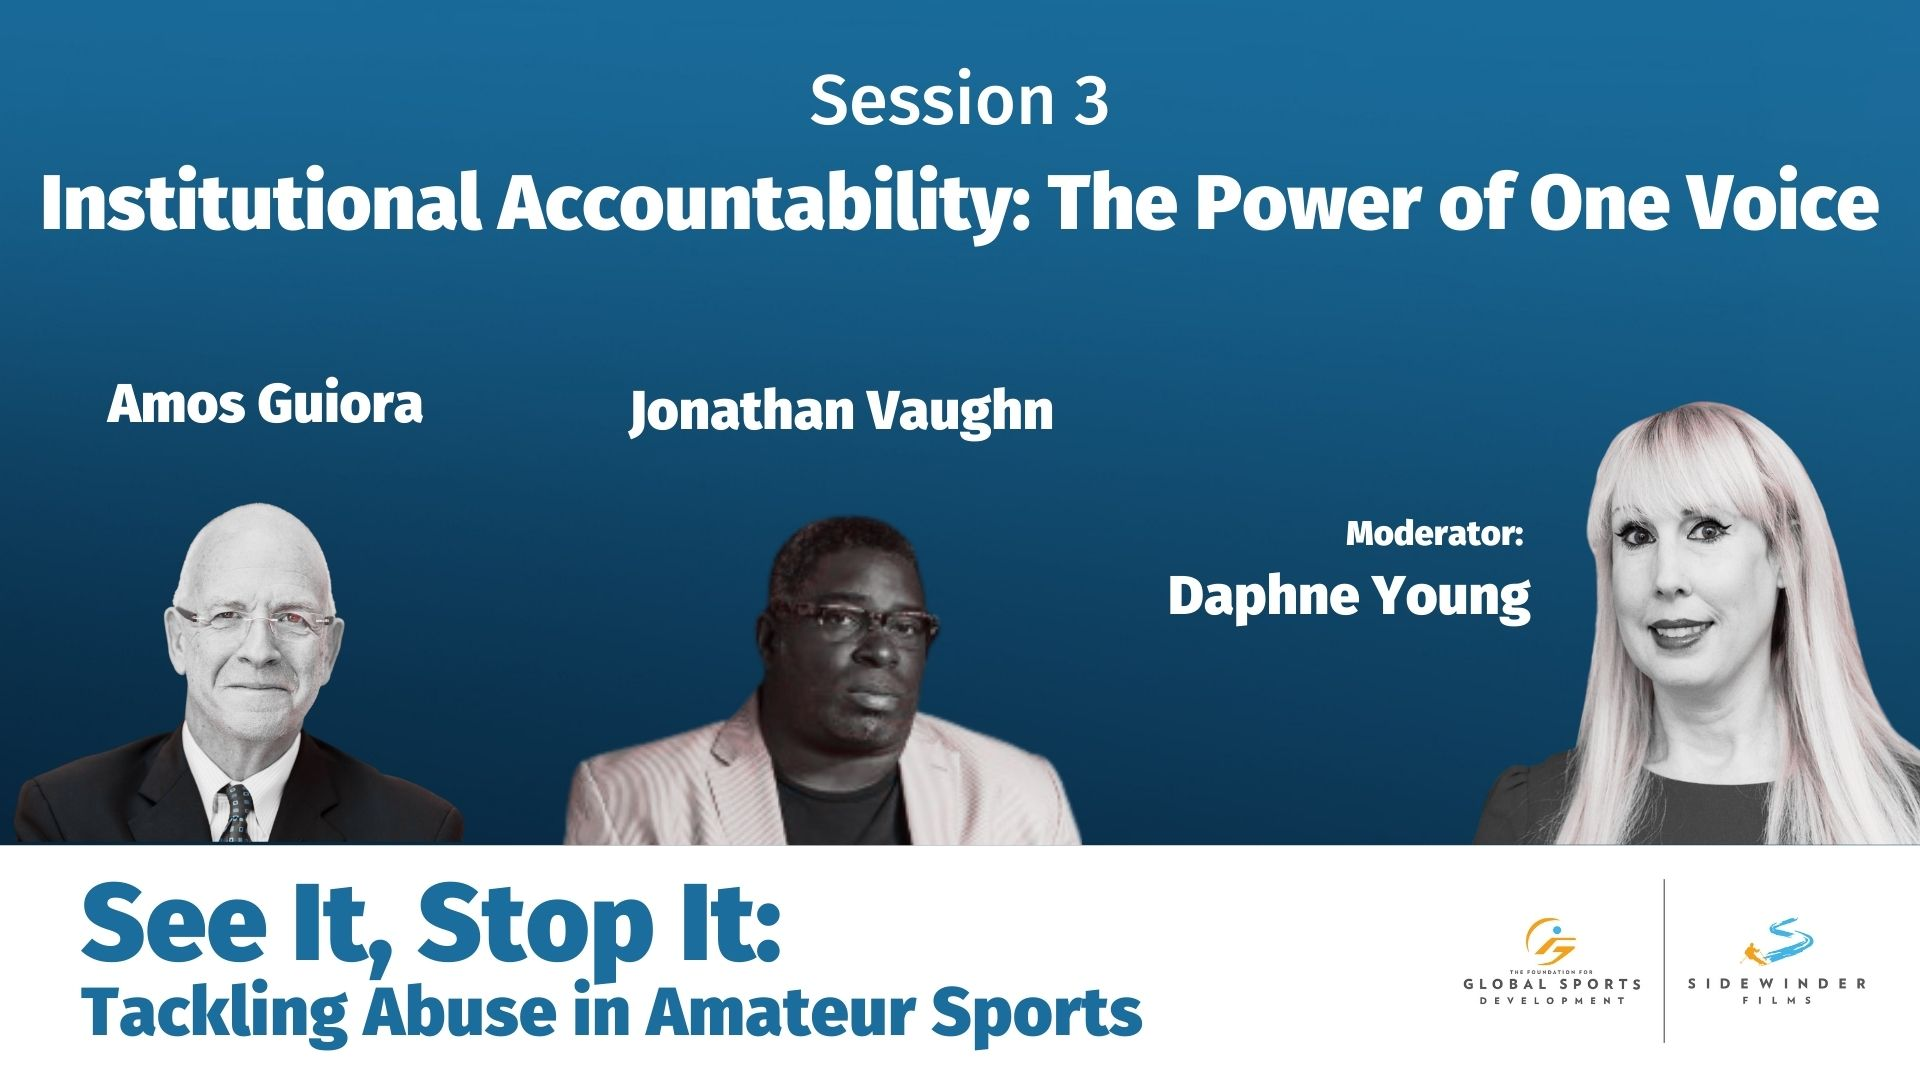 Institutional Accountability: The Power of One Voice